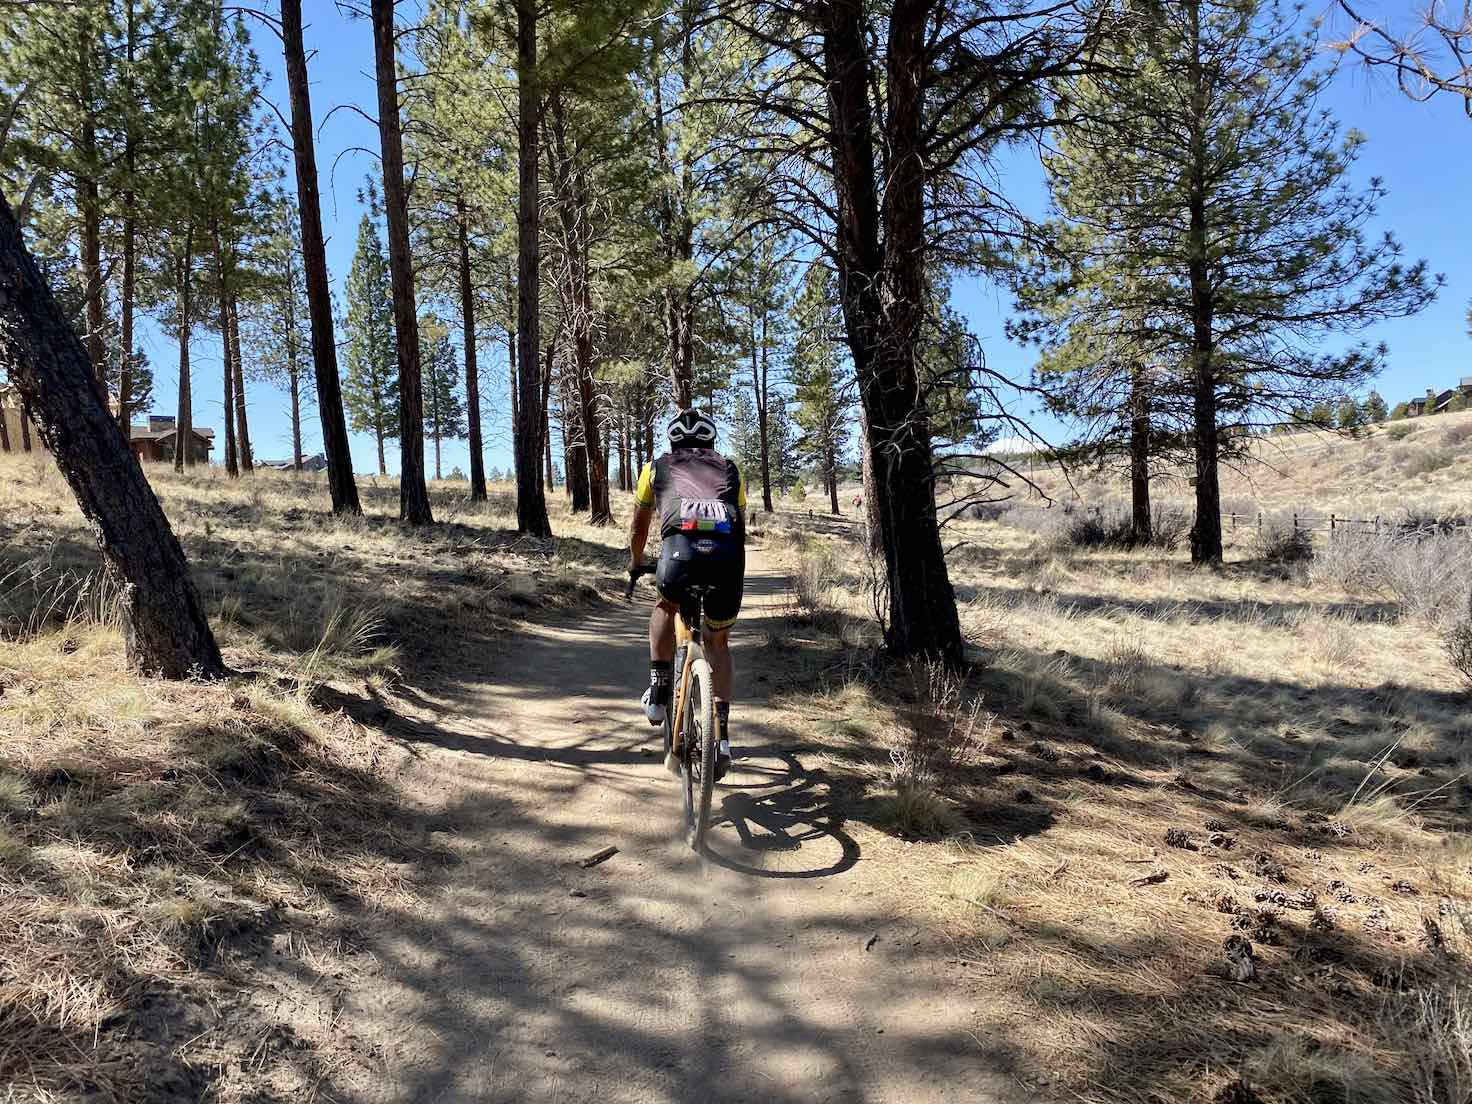 Gravel cyclists on the Cascade Highlands trail in Central Oregon.